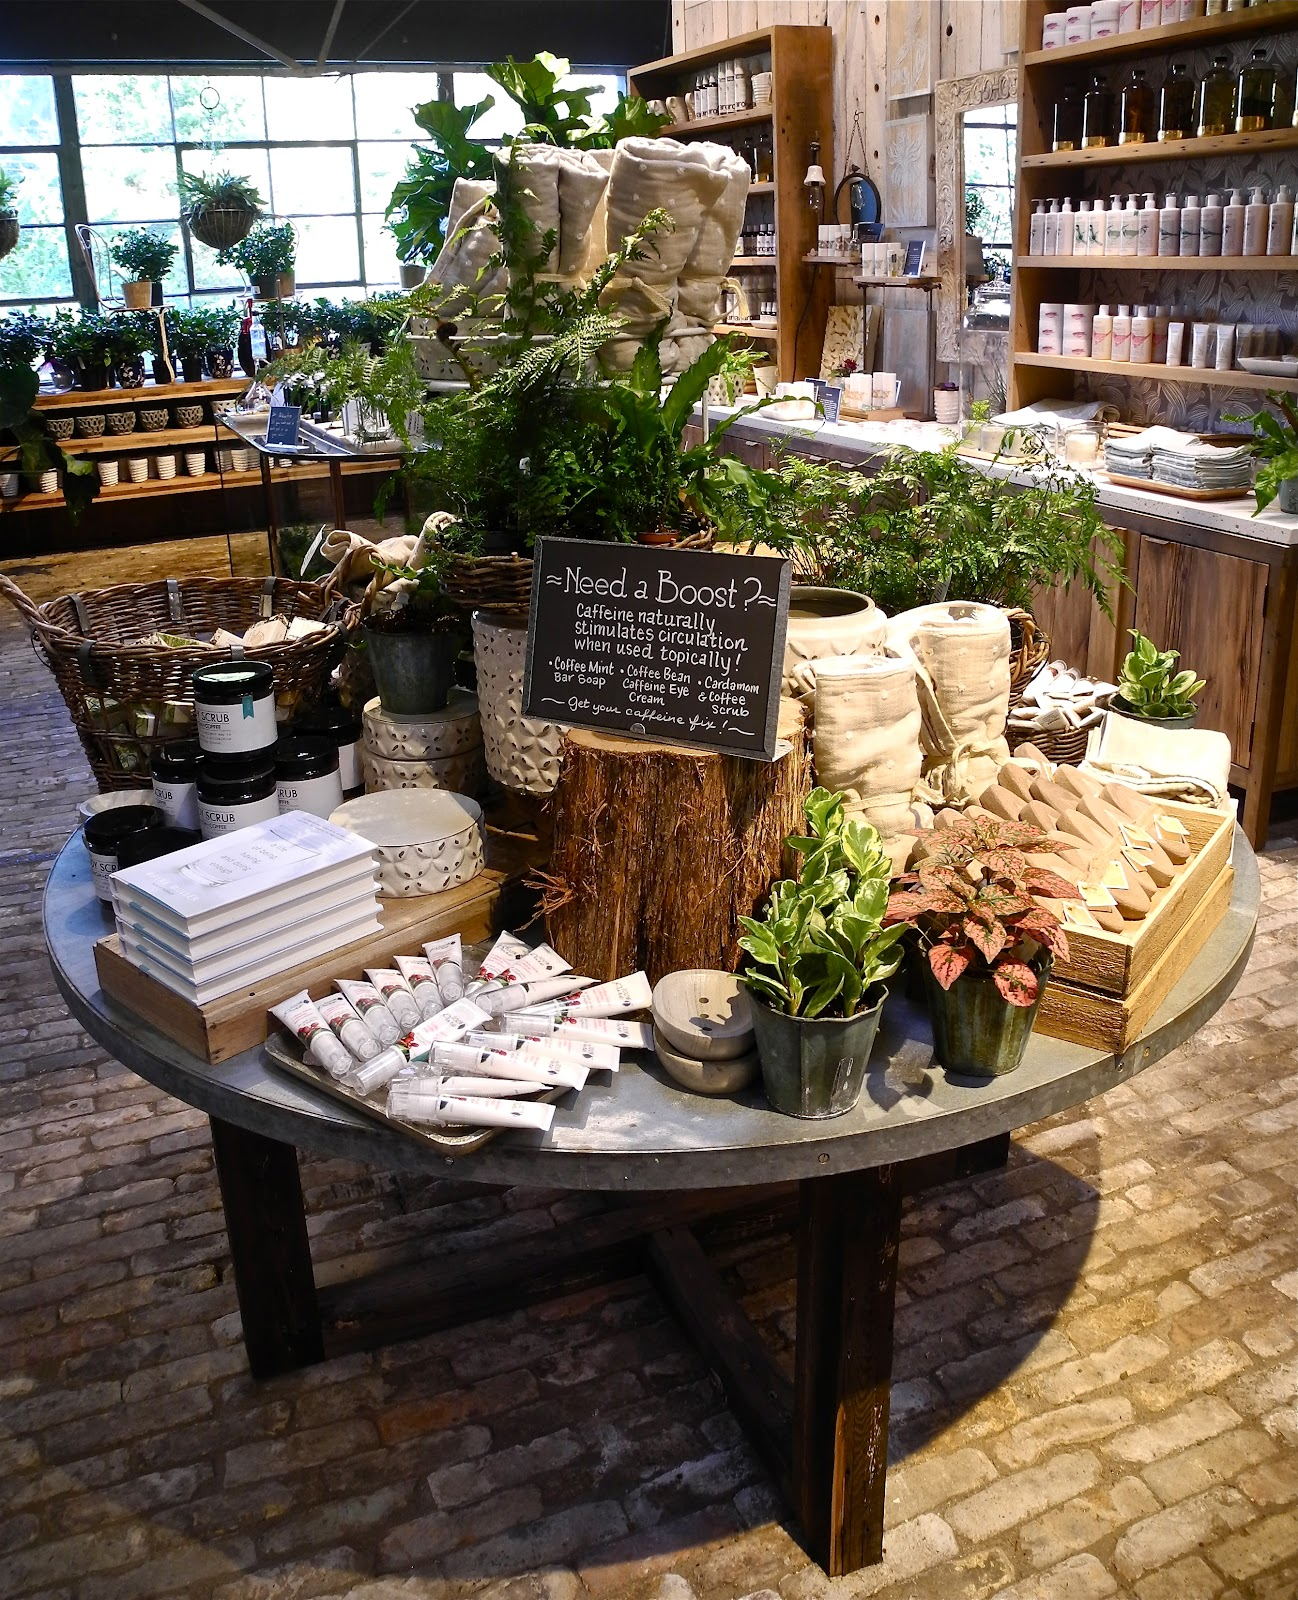 Paradis express terrain in westport for Table top display ideas